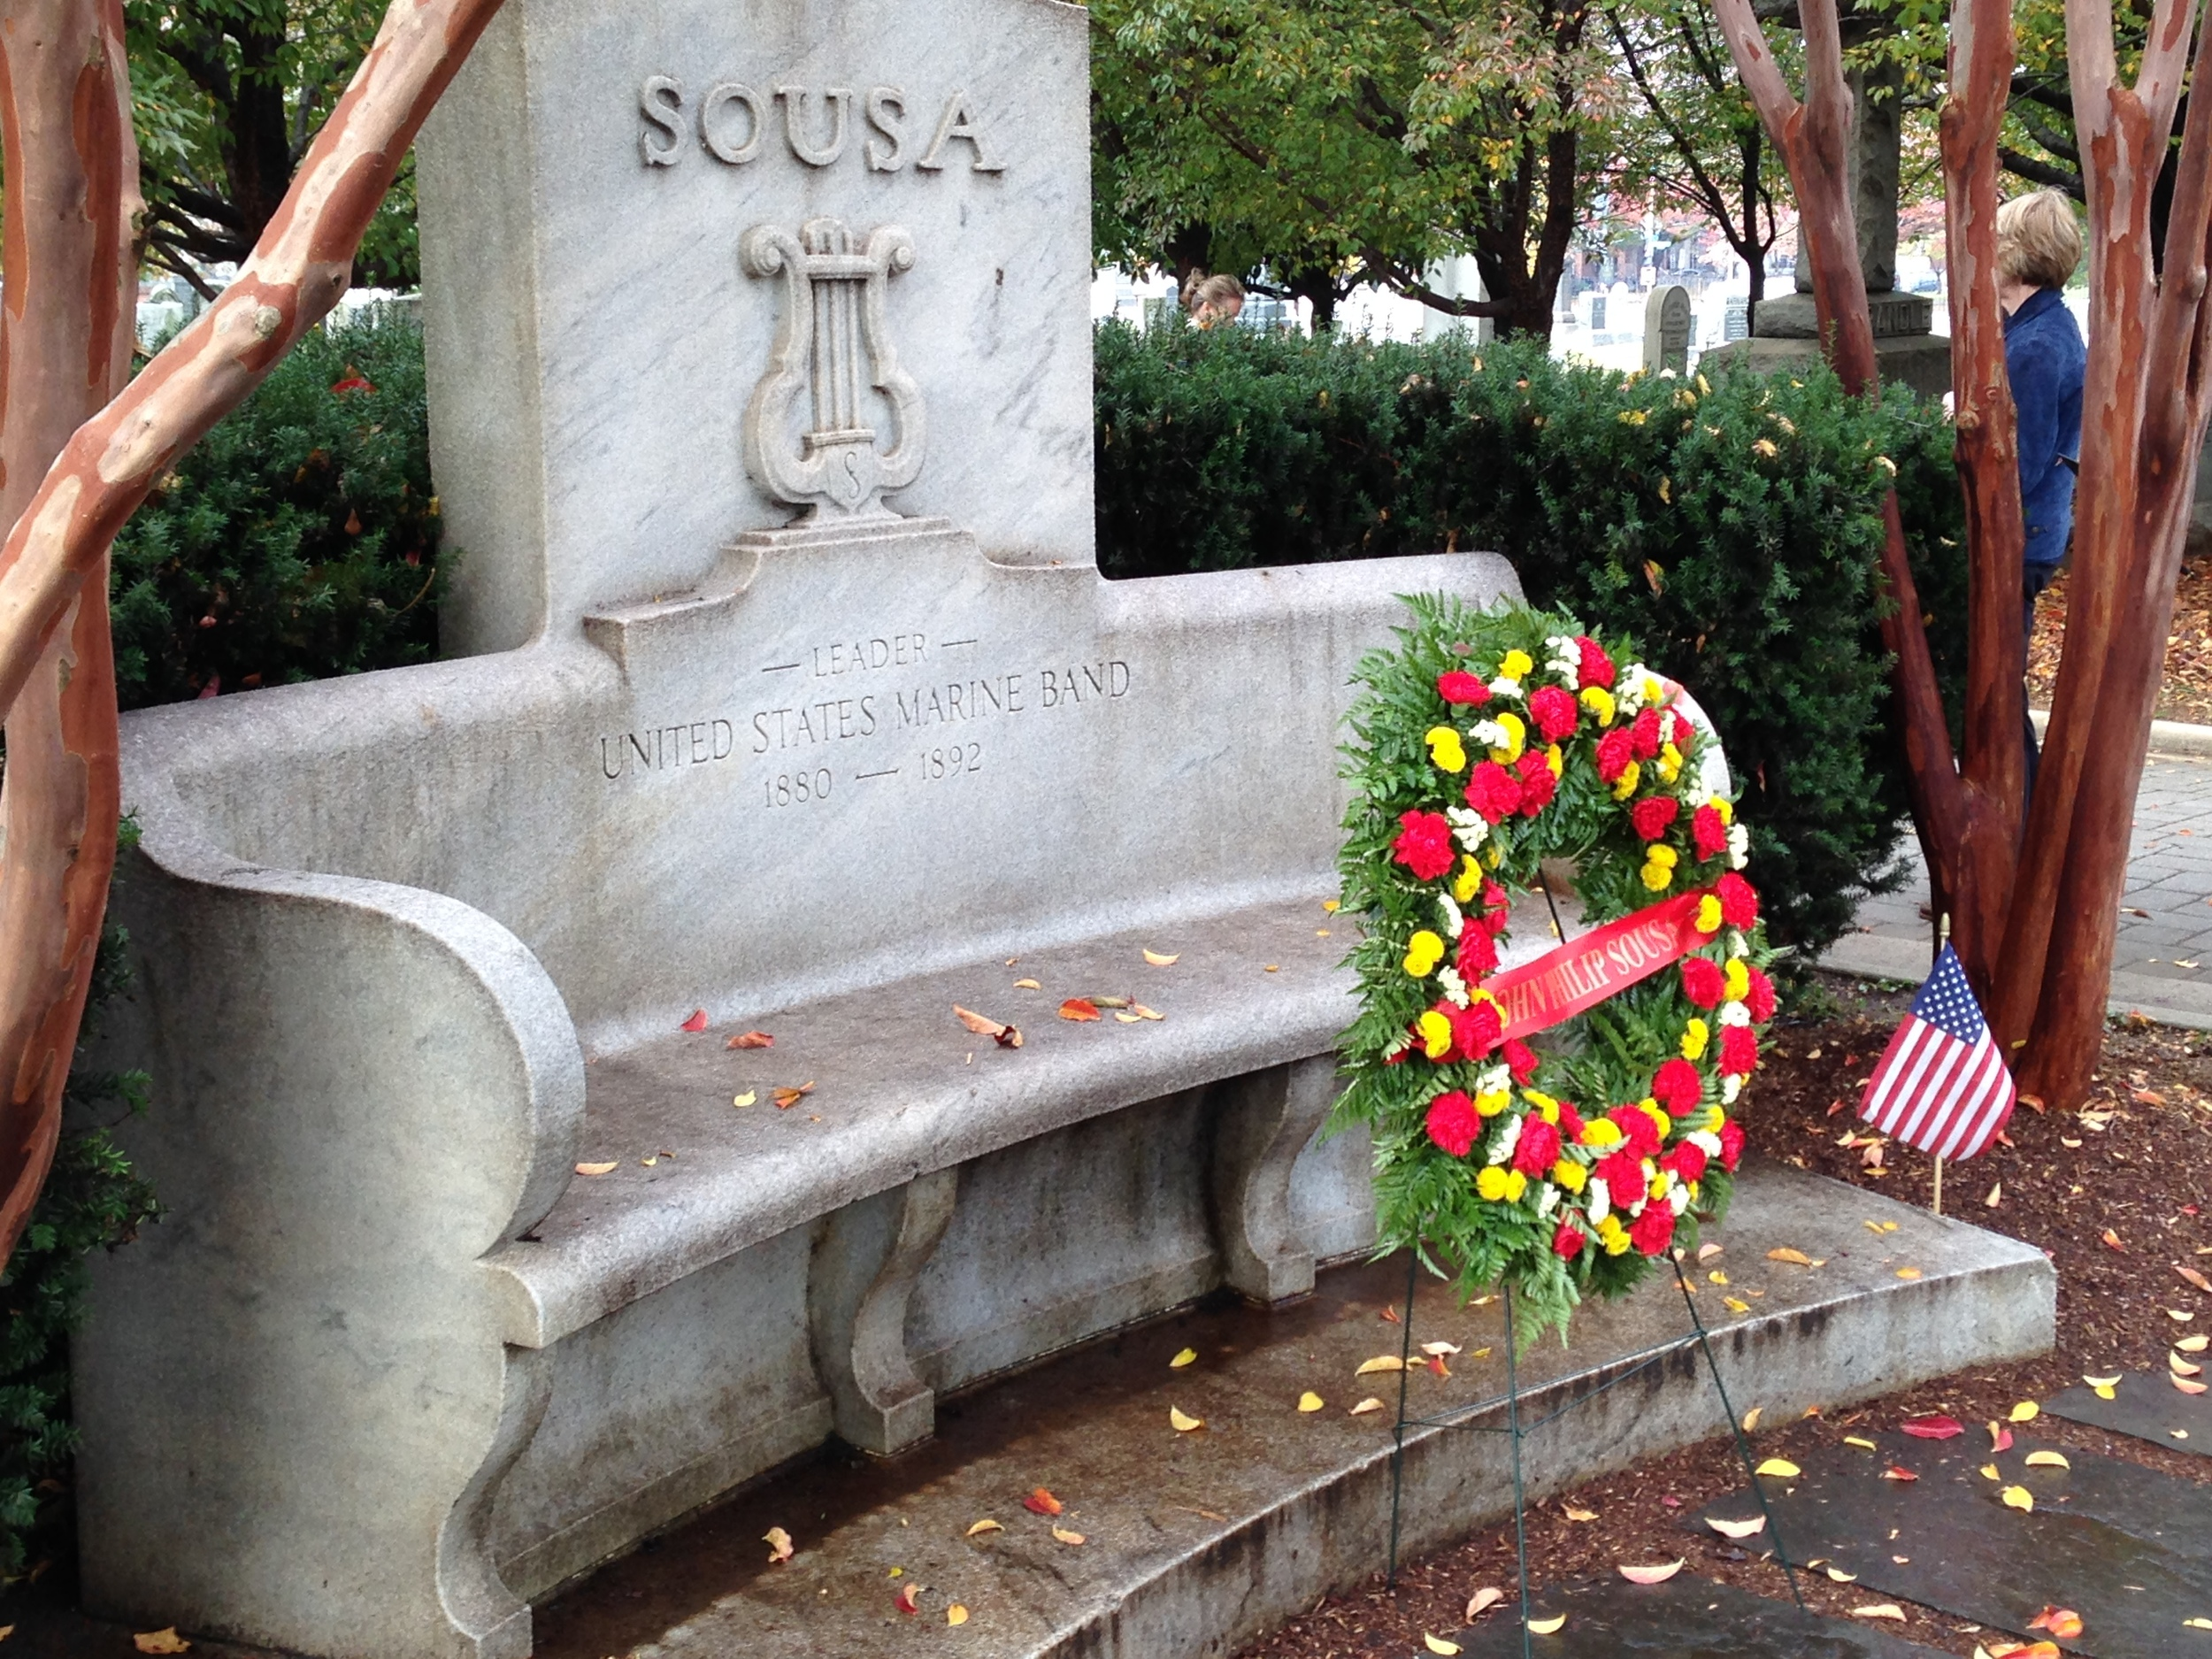 Sousa's grave was looking sharp this day.